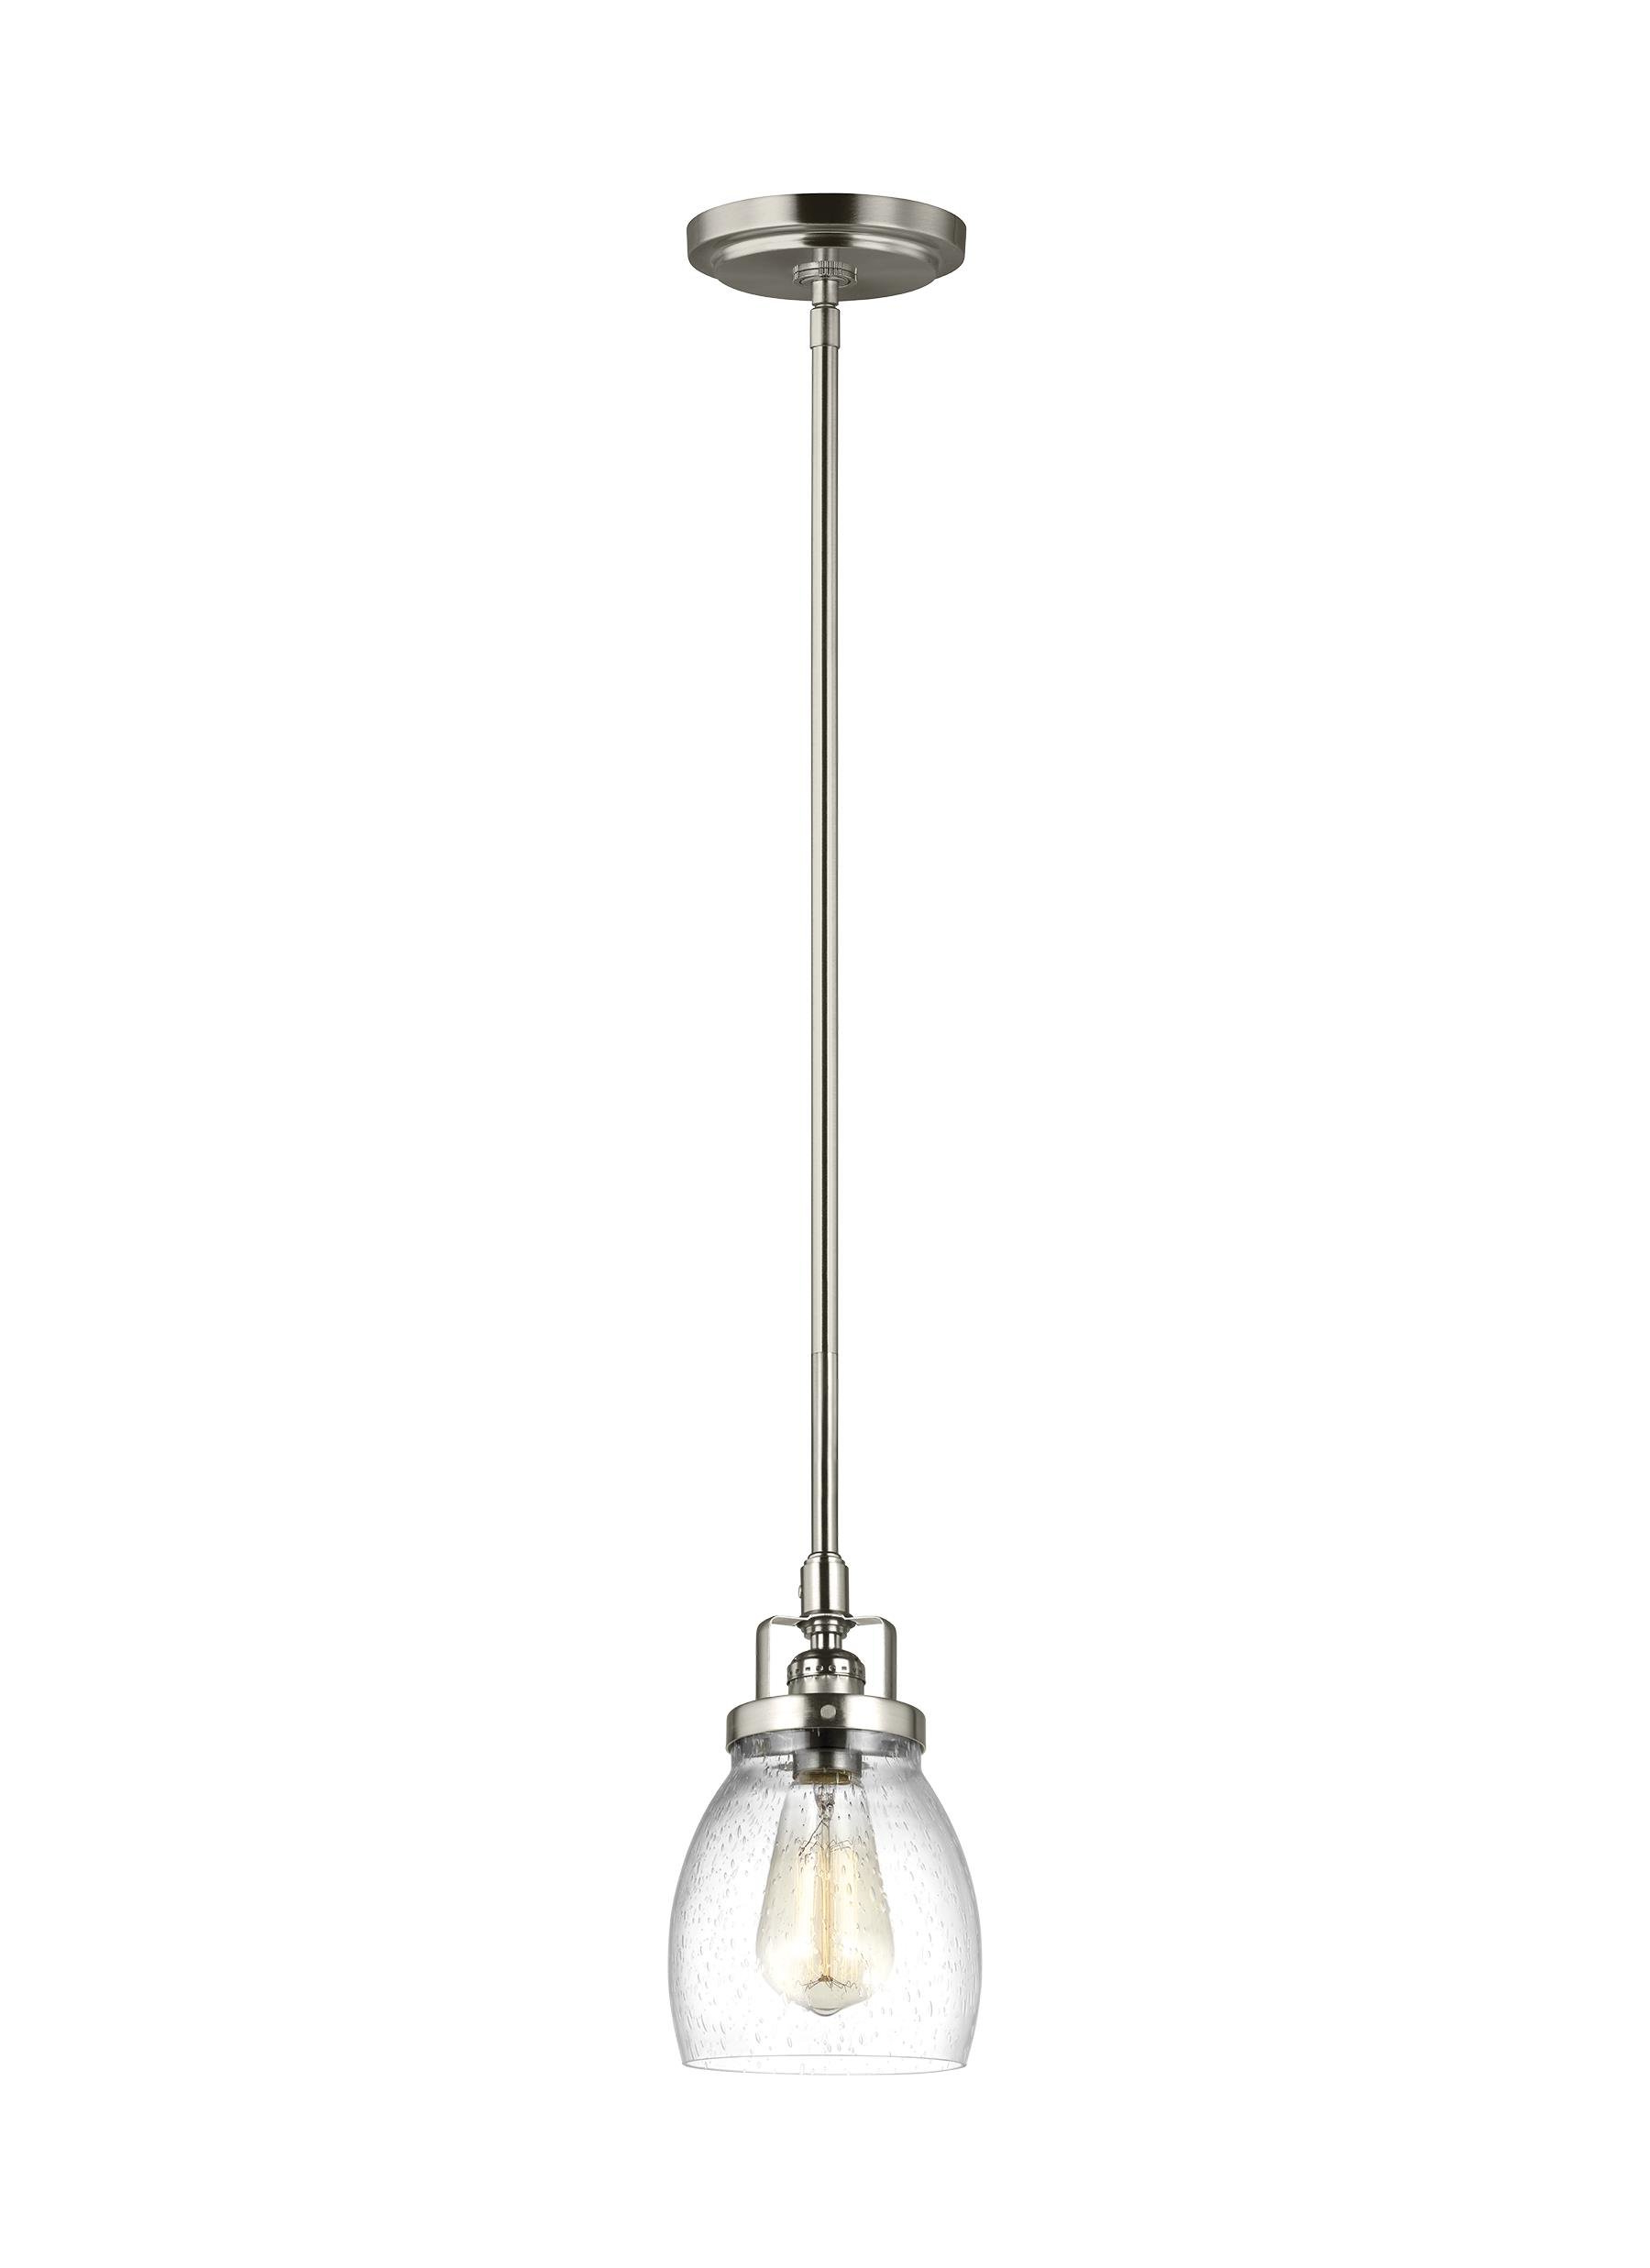 Best And Newest Yarger 1 Light Single Bell Pendants With Houon 1 Light Cone Bell Pendant (View 3 of 20)